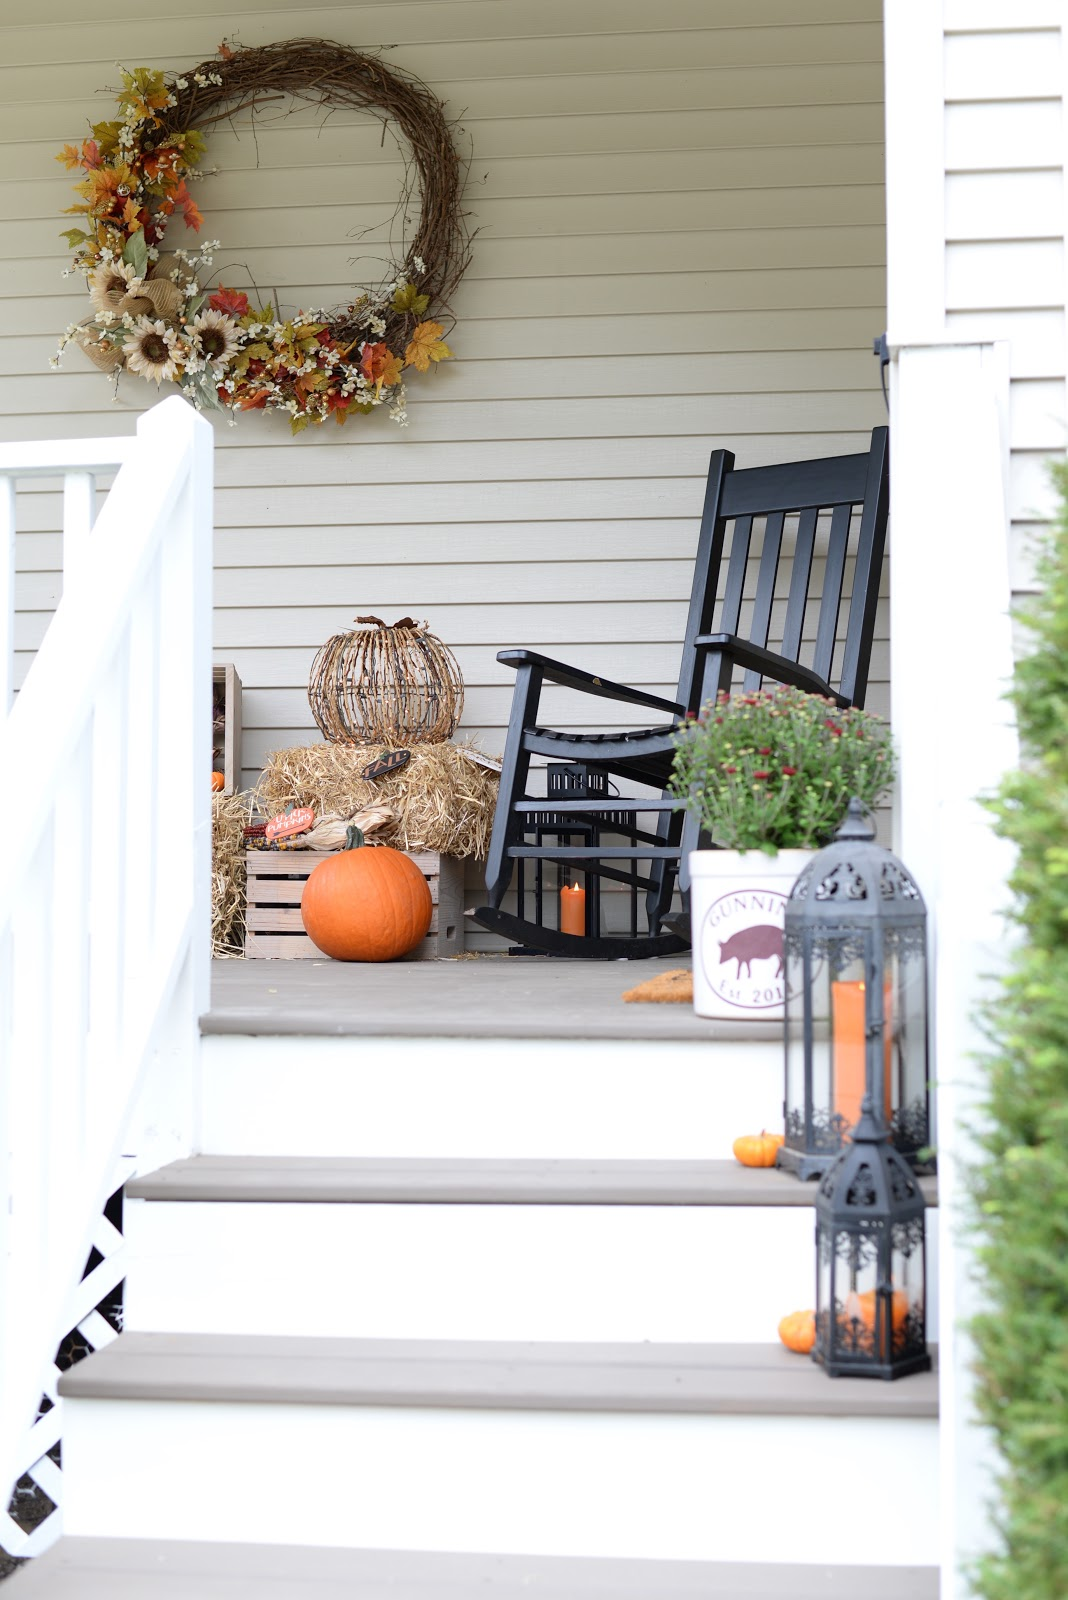 Ways to decorate a fall porch